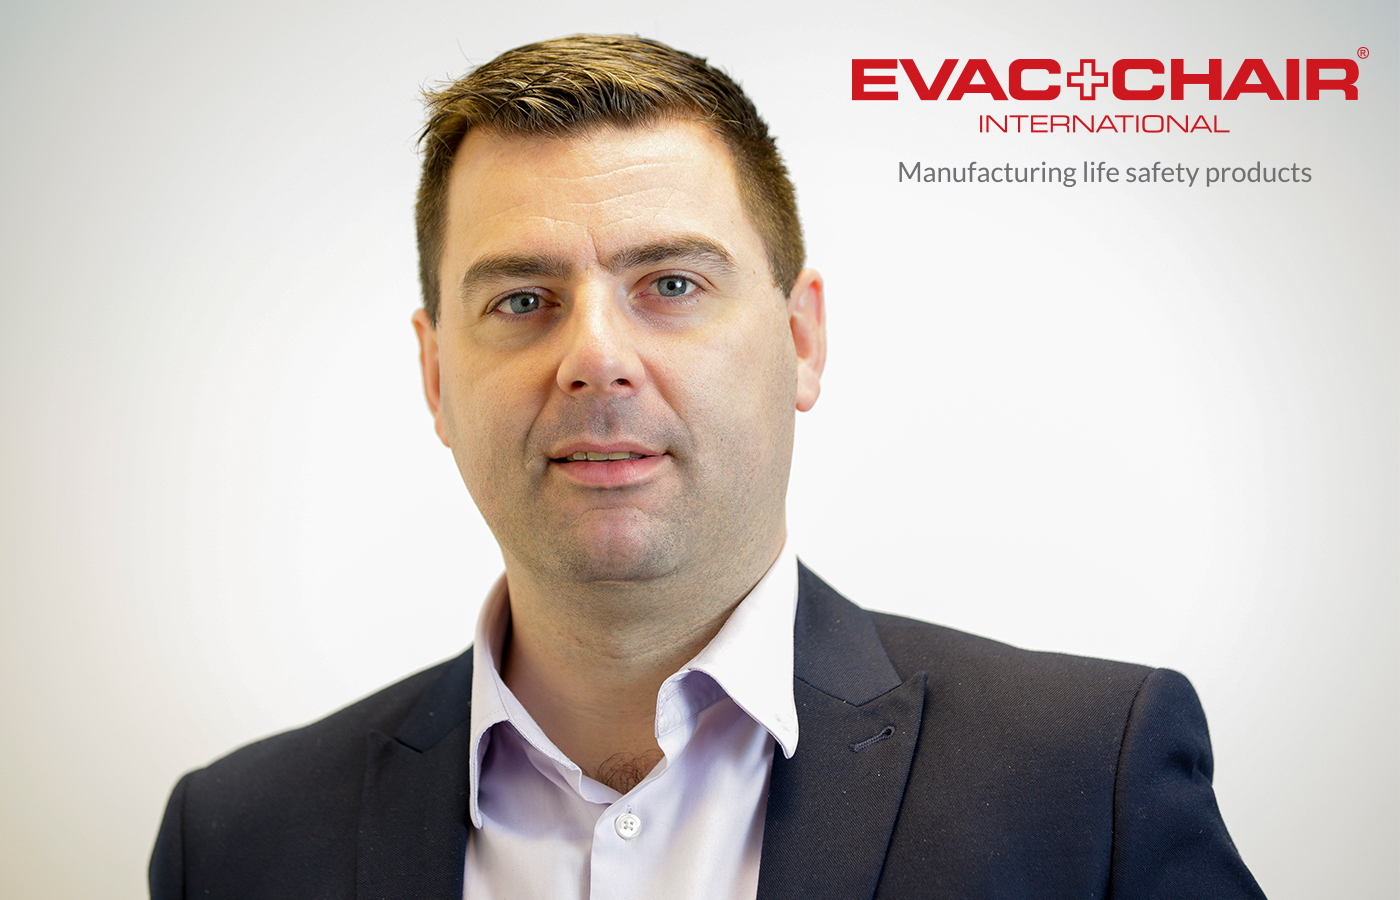 Evac+Chair International appoints new Technical Director